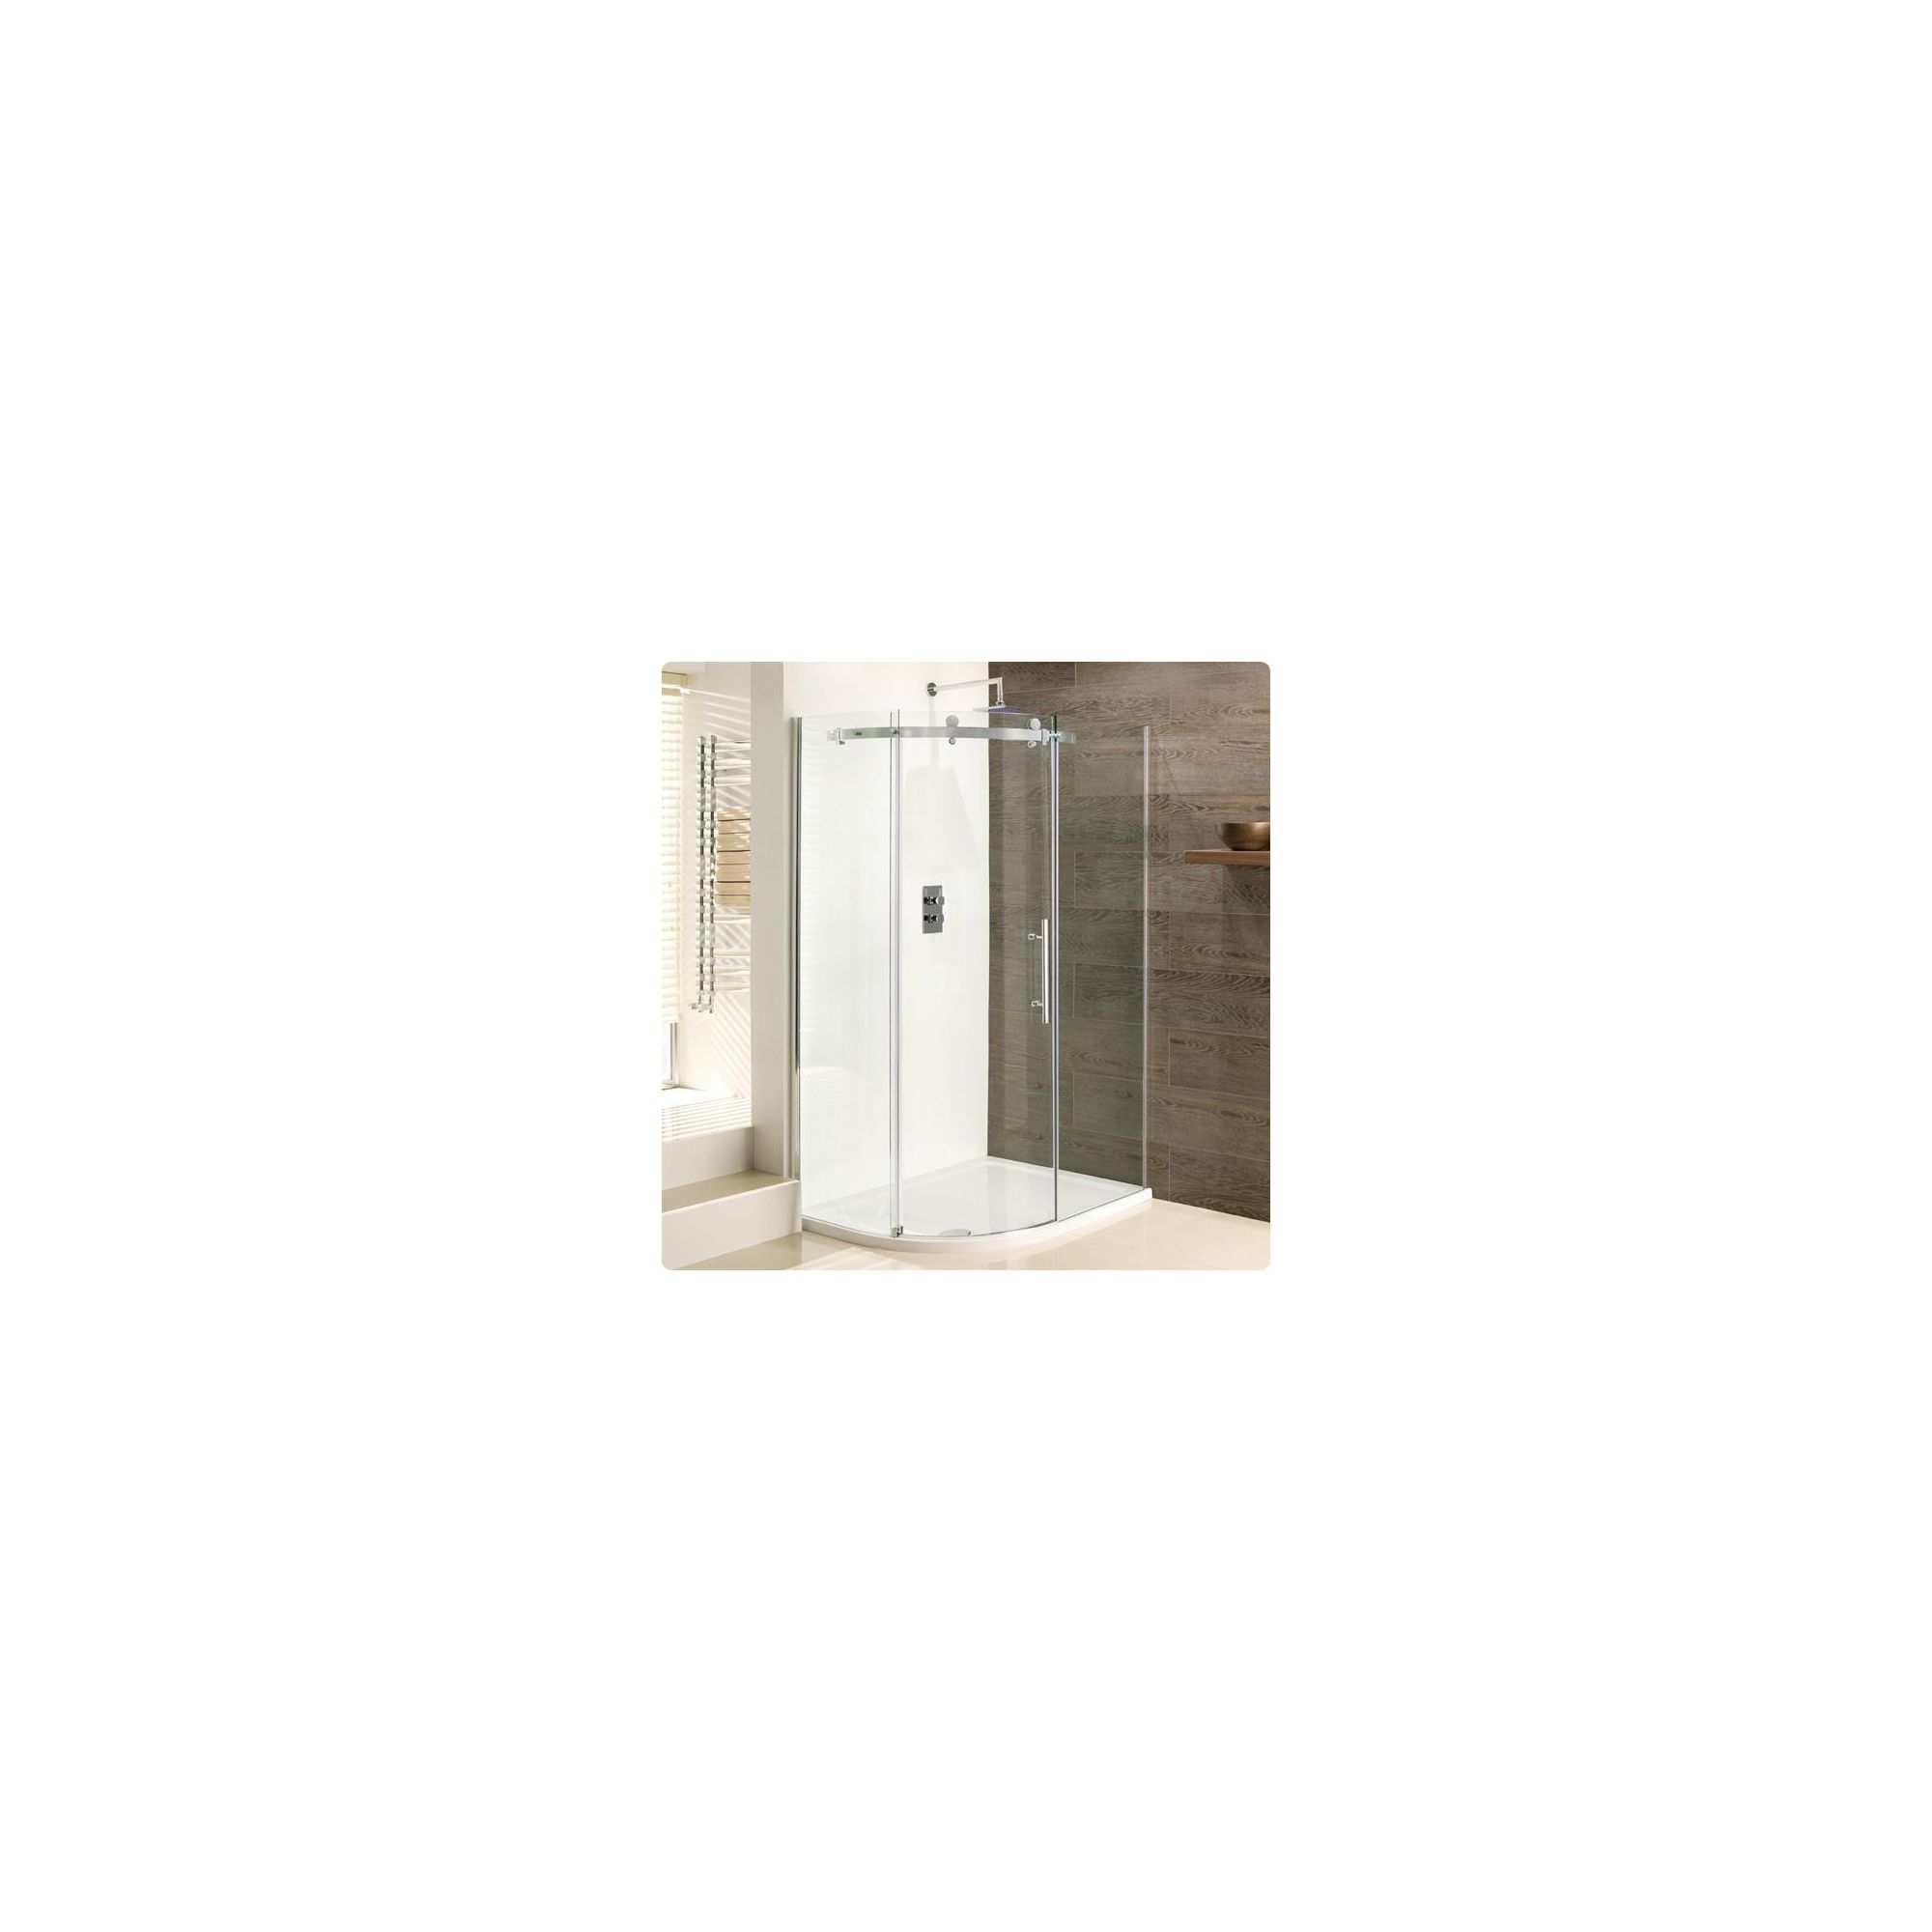 Duchy Deluxe Silver Offset Quadrant Shower Enclosure 1000mm x 800mm (Complete with Tray), 10mm Glass at Tesco Direct